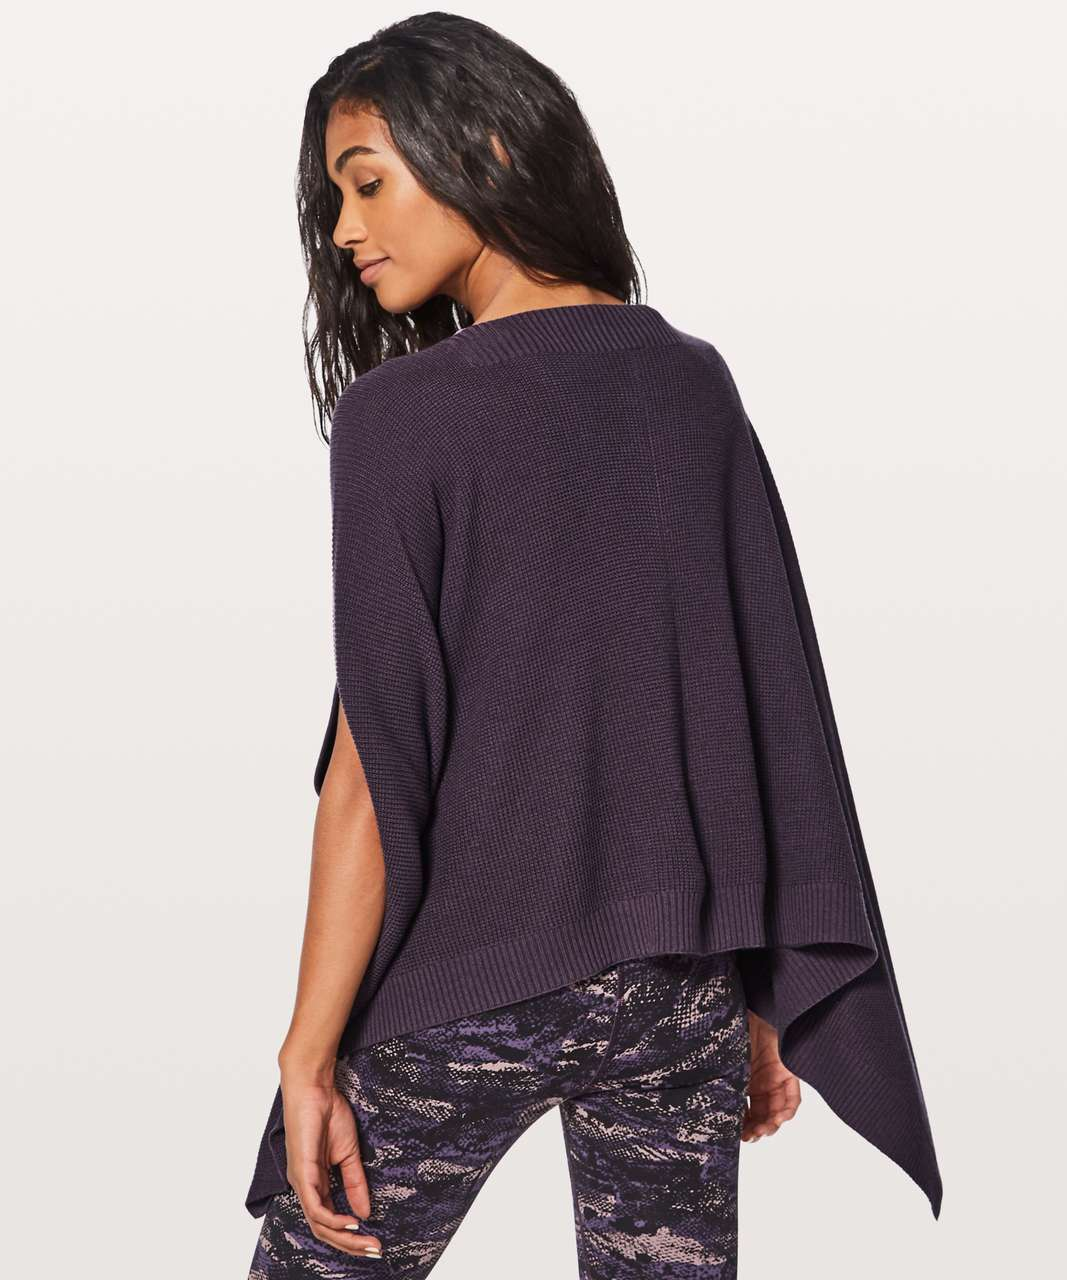 Lululemon Forward Flow Cape - Black Currant